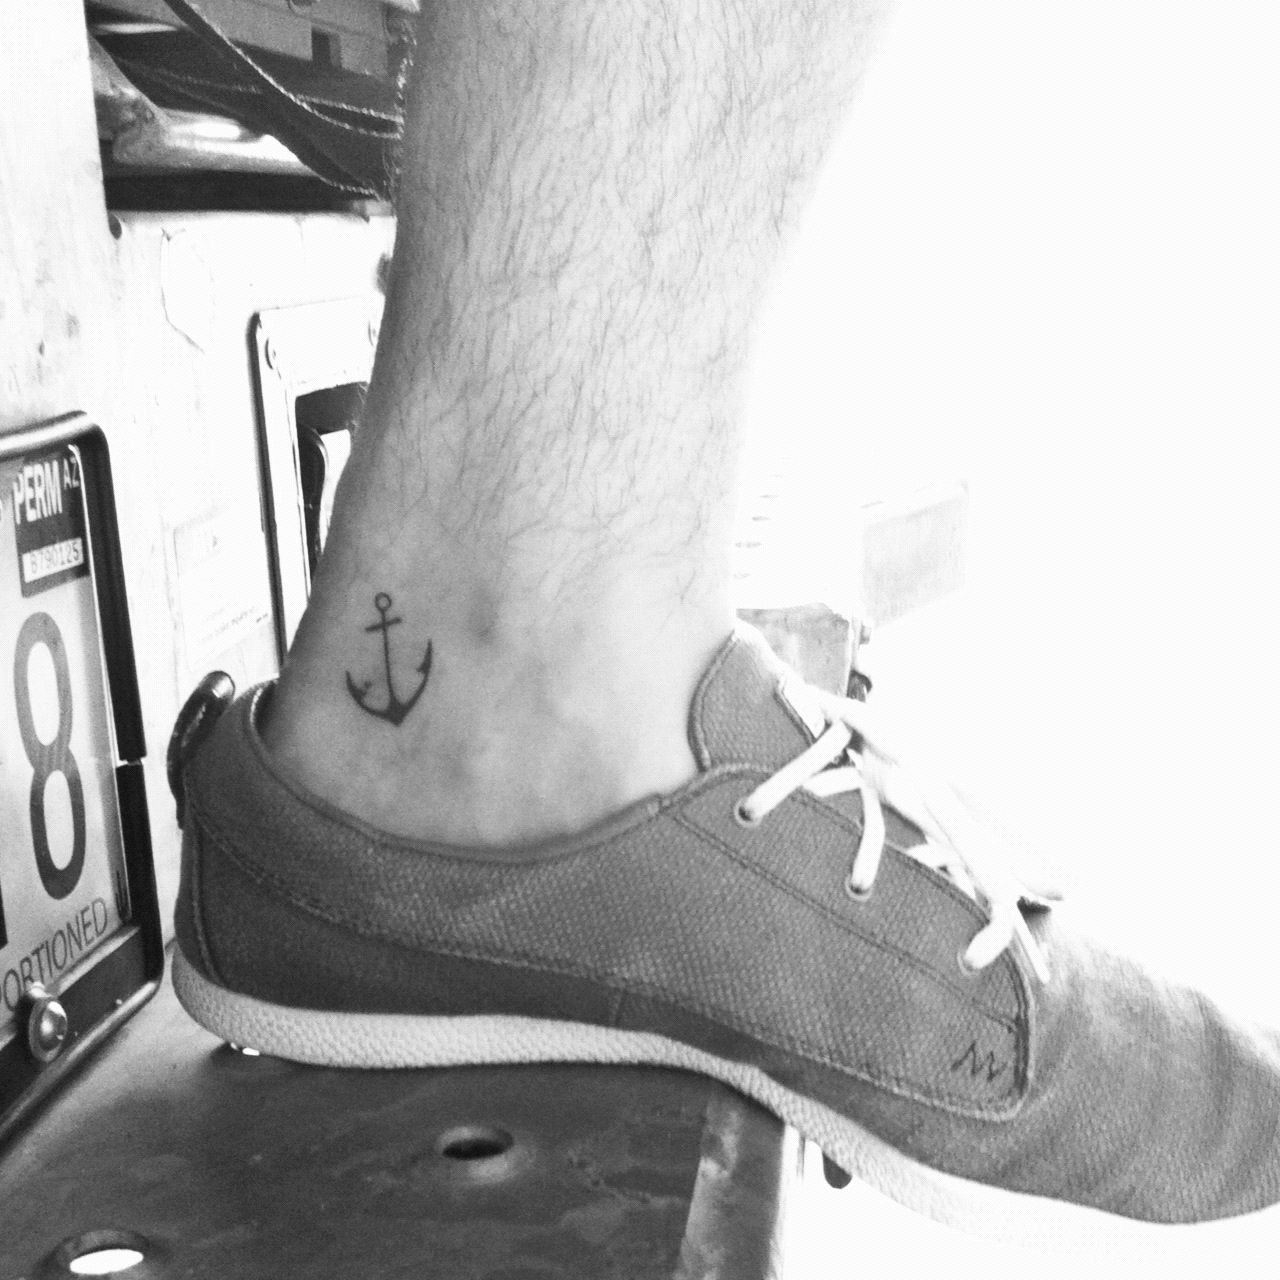 Ankle Tattoos For Men Ankle Tattoo Men Small Tattoos For Guys Tattoos For Guys